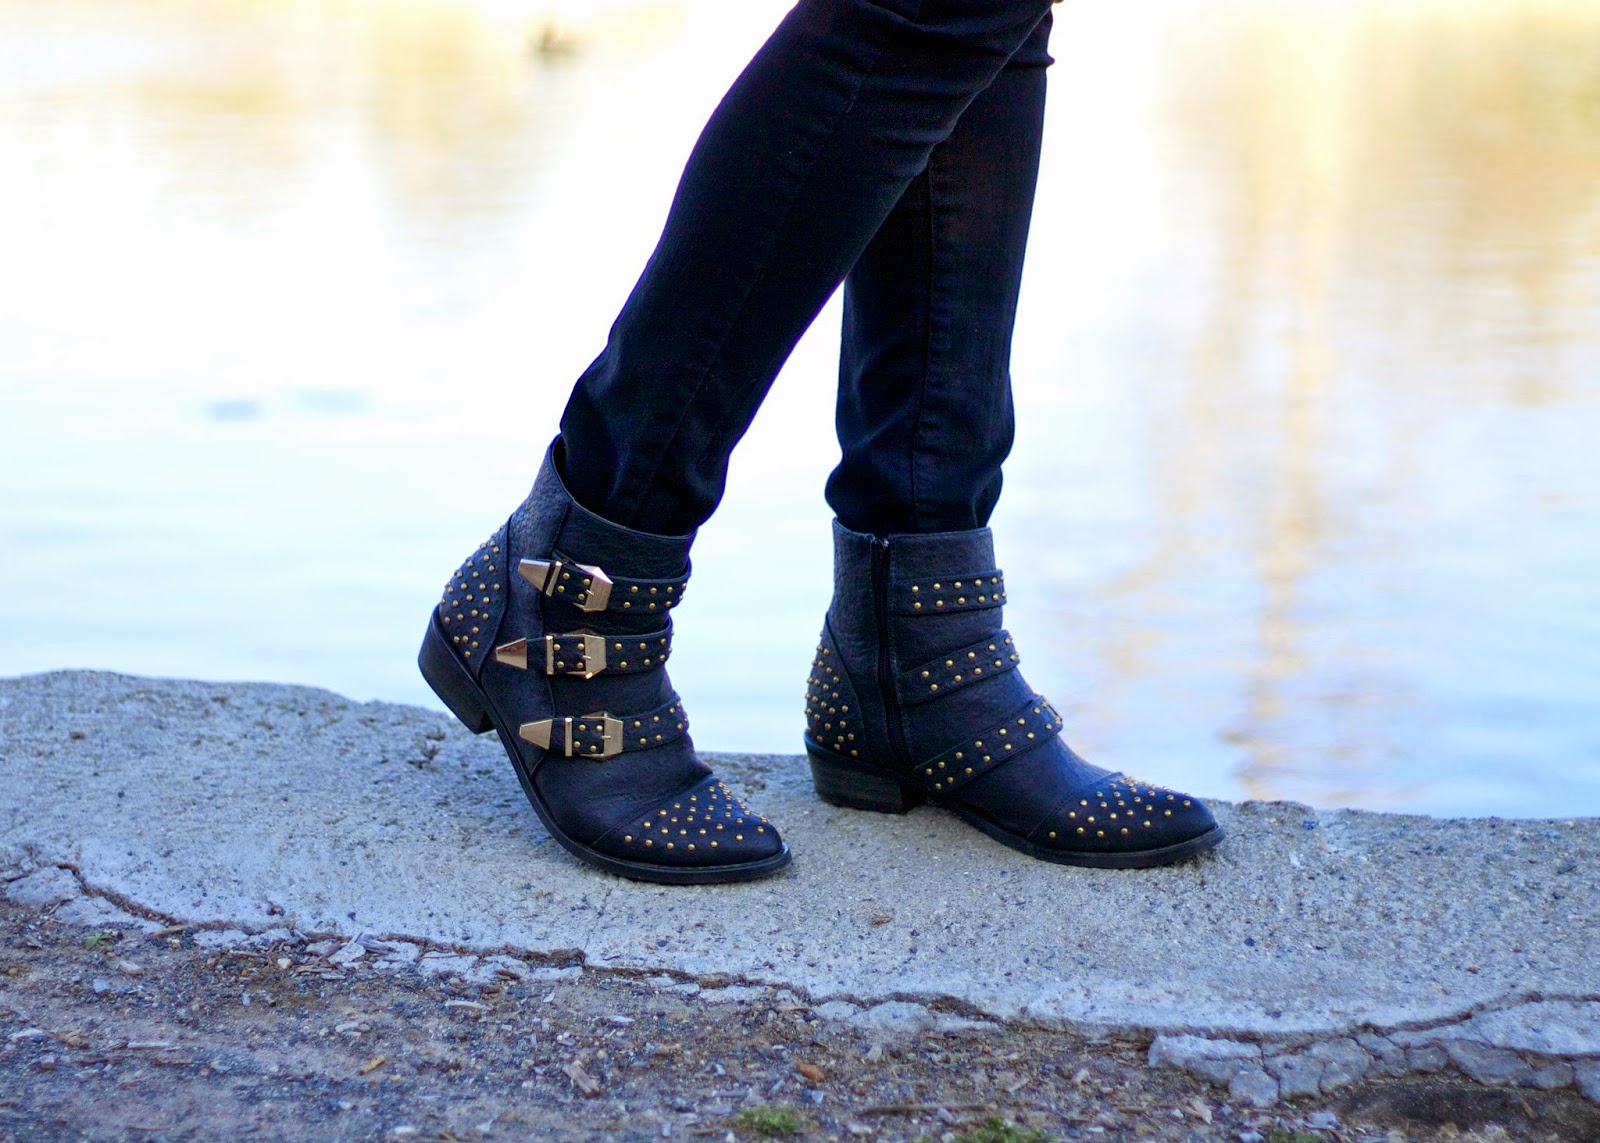 Justfab boots, how to wear studded booties, comfortable boots, justfab blogger, showdazzle blogger, how to wear booties, casual chic outfit